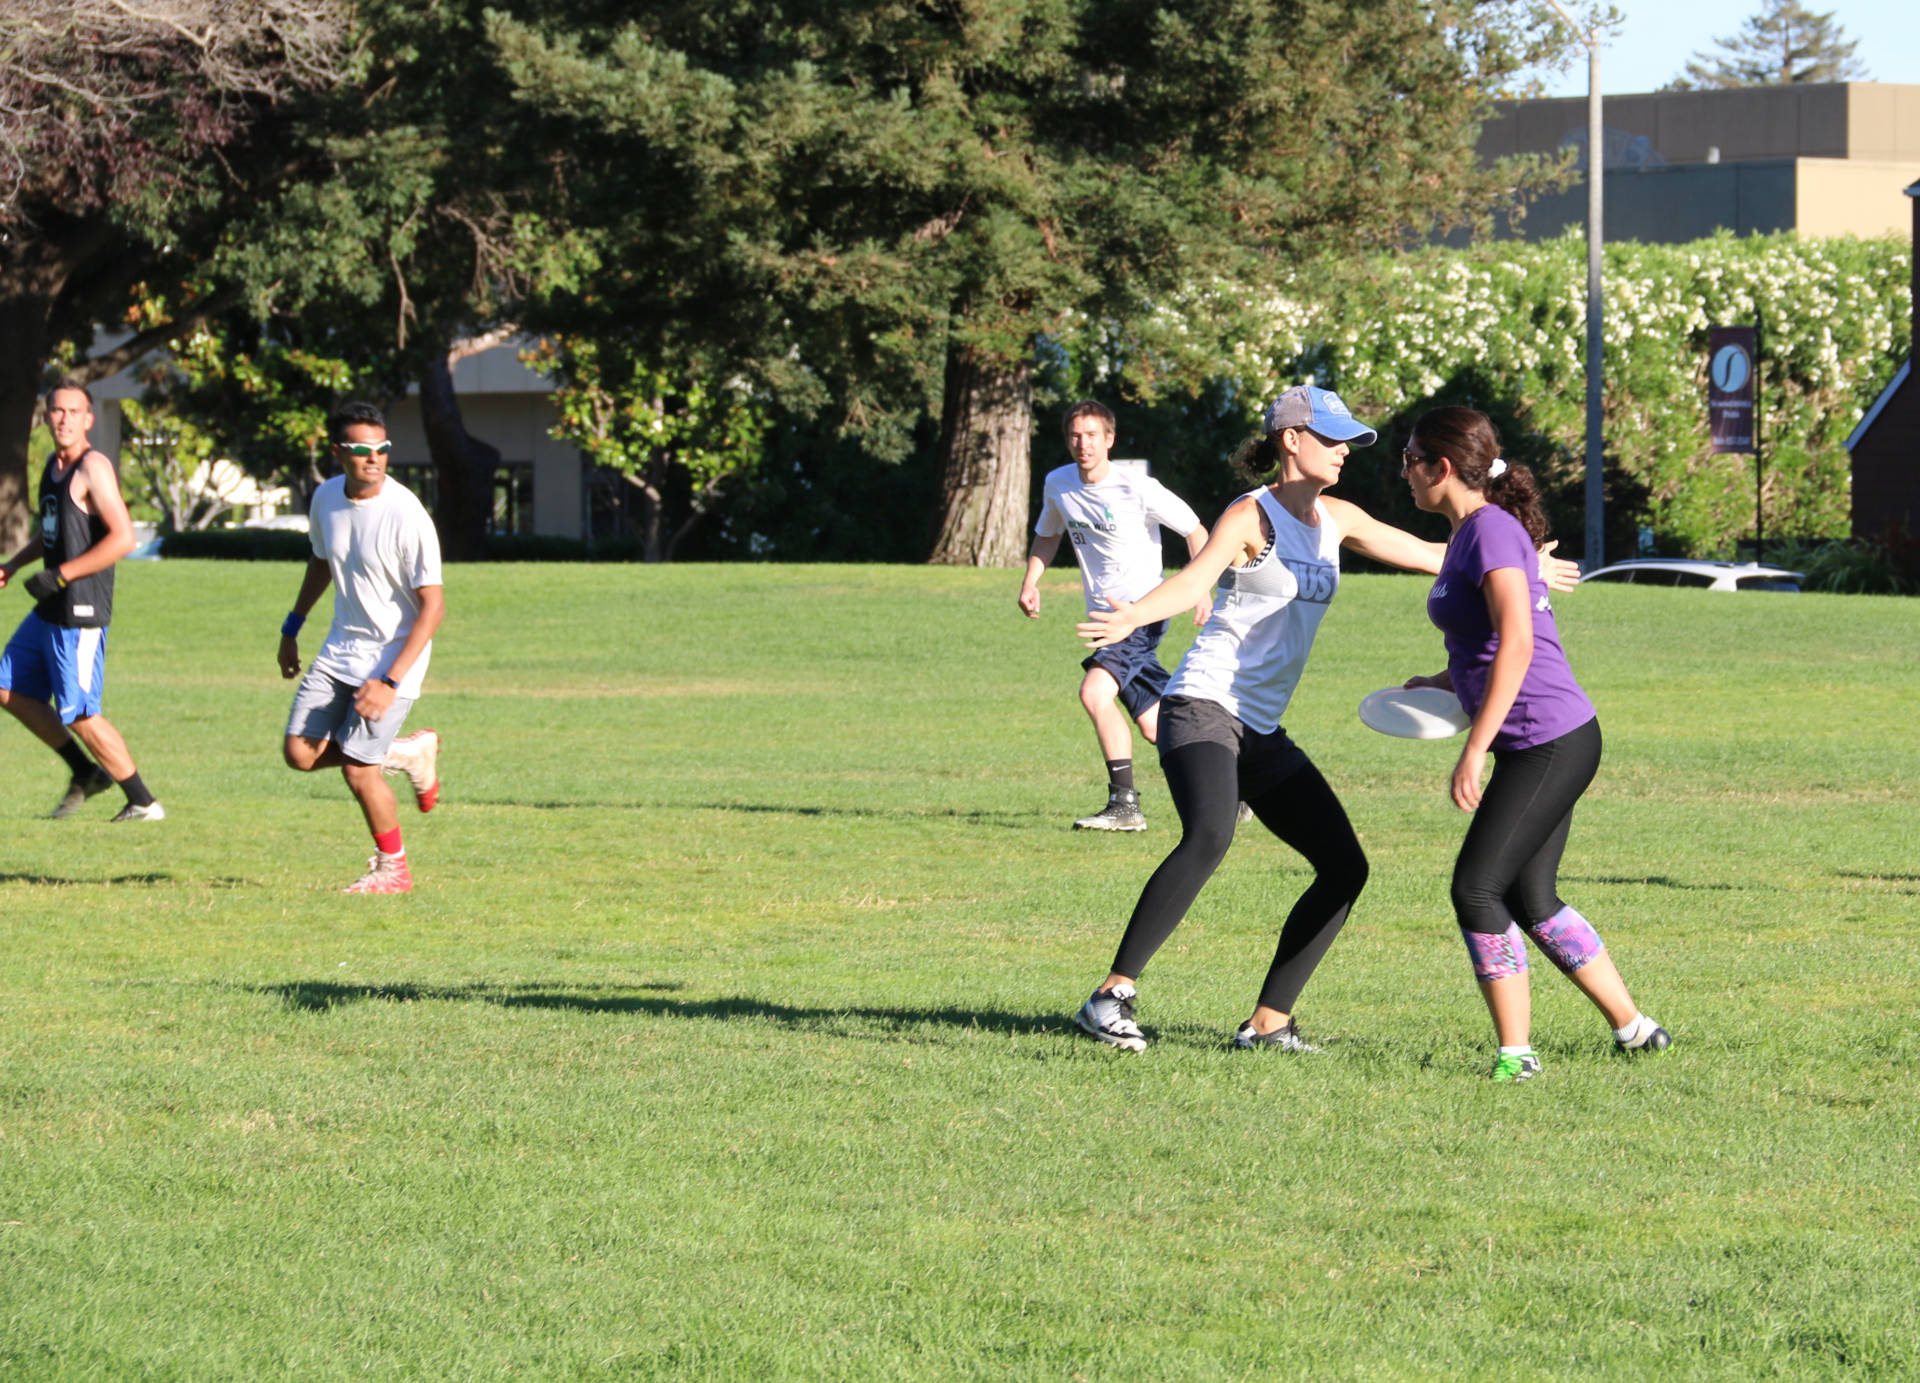 Afifa Tawil is an organizer of pickup ultimate games in the South Bay. Here she eyes opportunities to pass the Frisbee.  Olivia Allen-Price/KQED